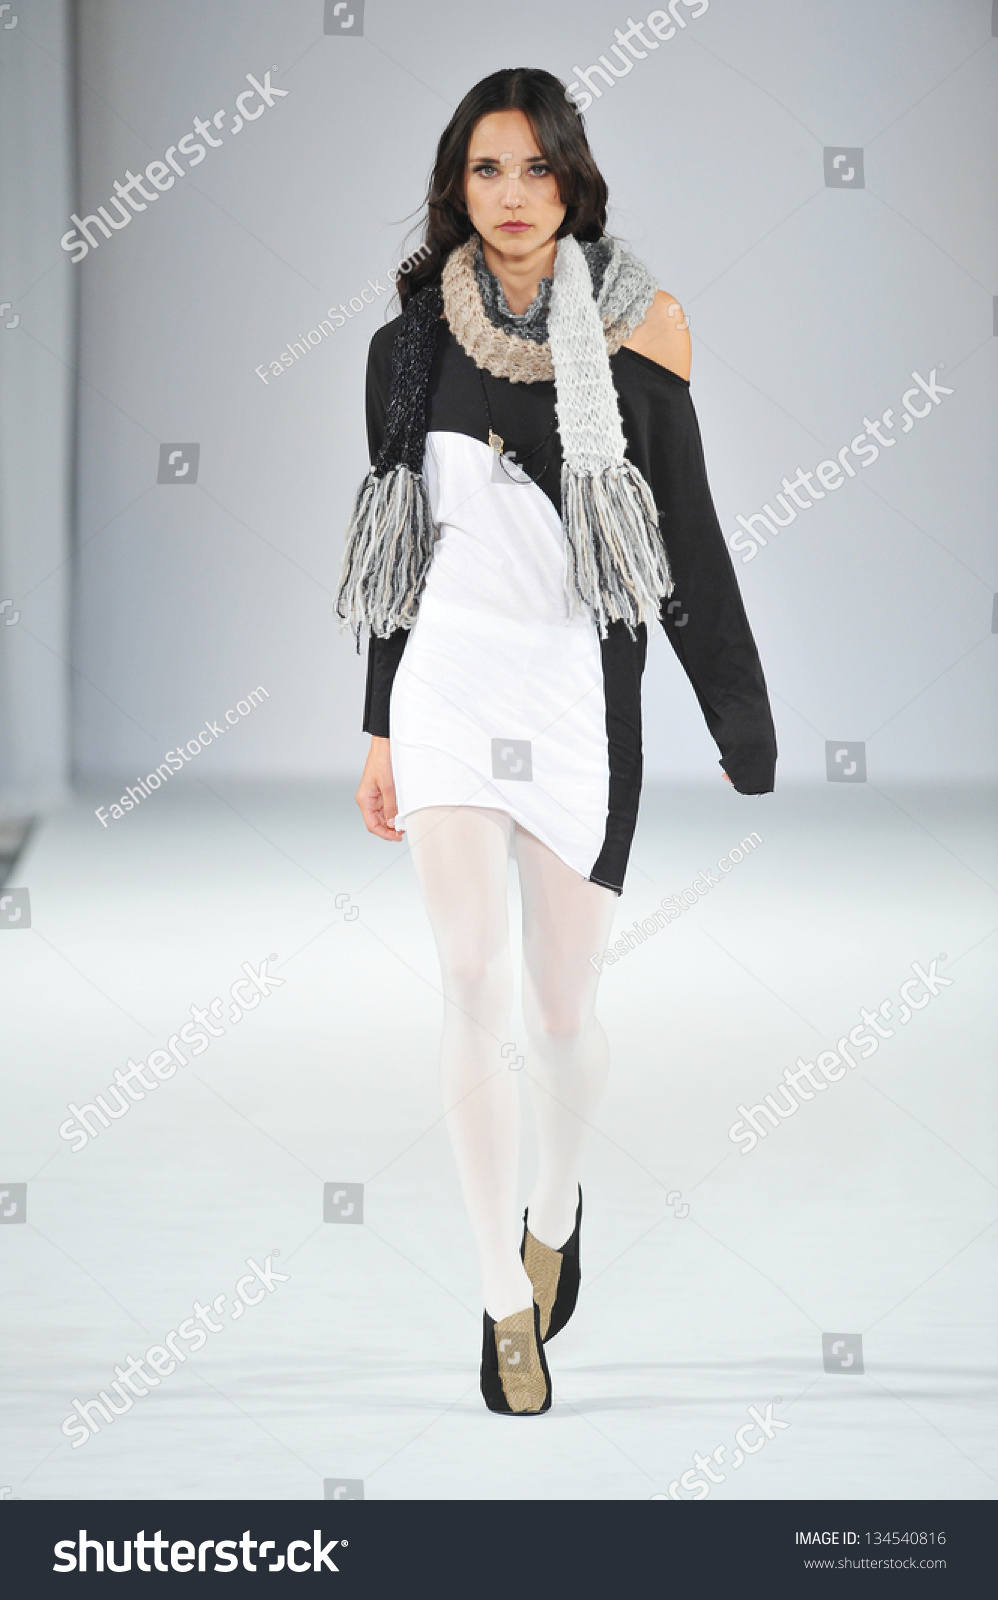 Los Angeles March 14 Celebrities Walk The Runway At Linden La During Style Fashion Week At